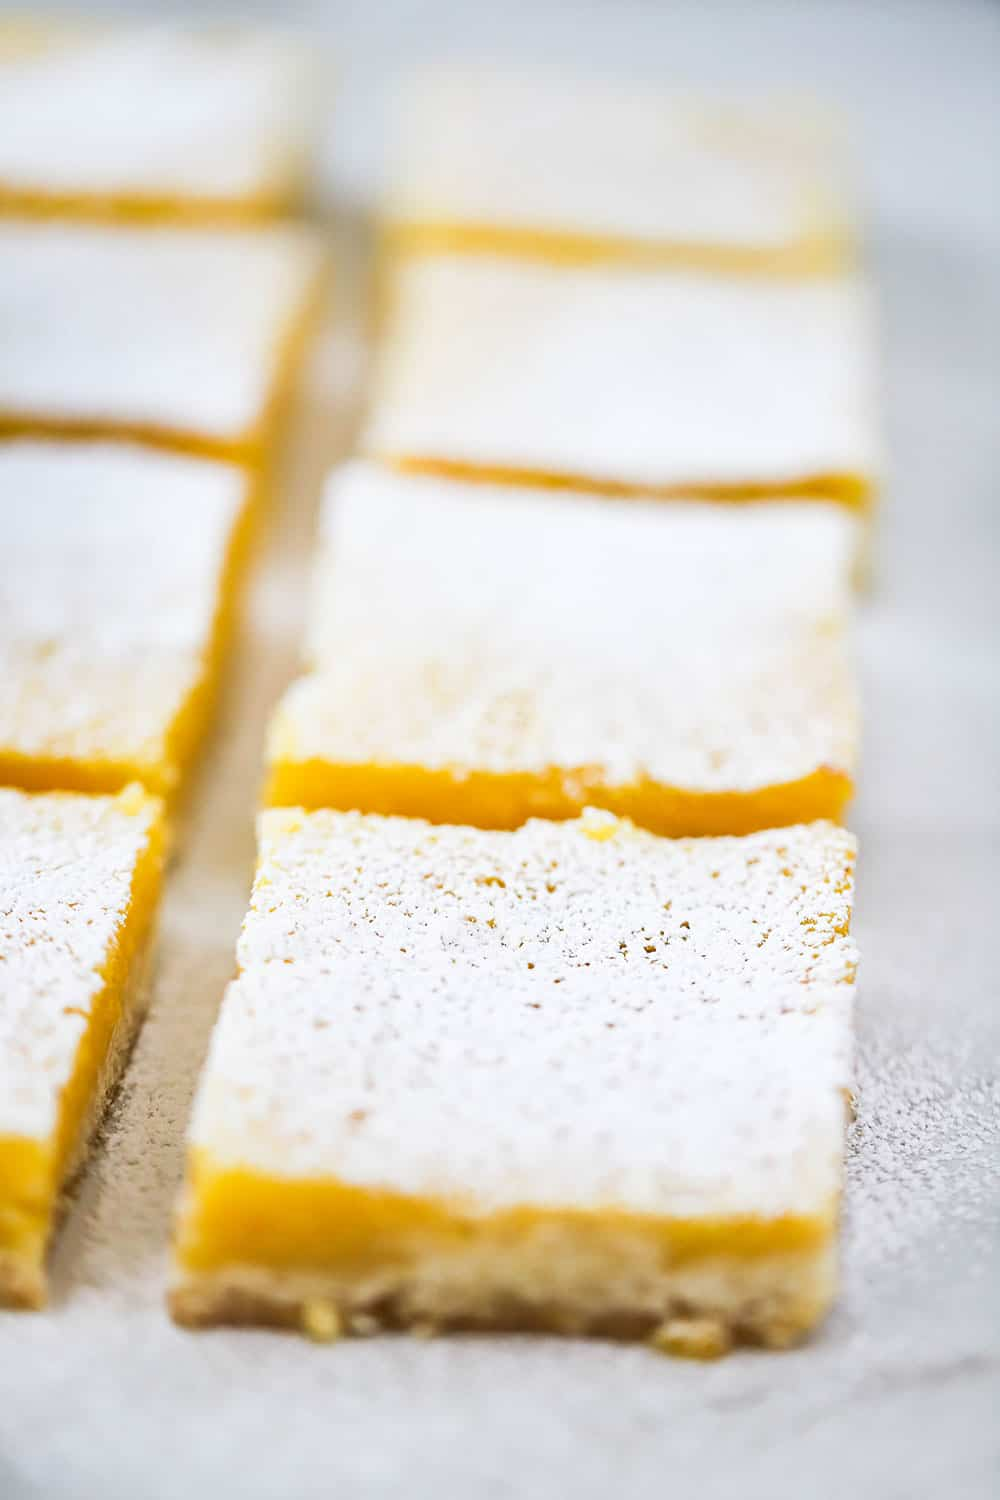 Two rows of lemon bars that have been cut into squares and dusted with powdered sugar.